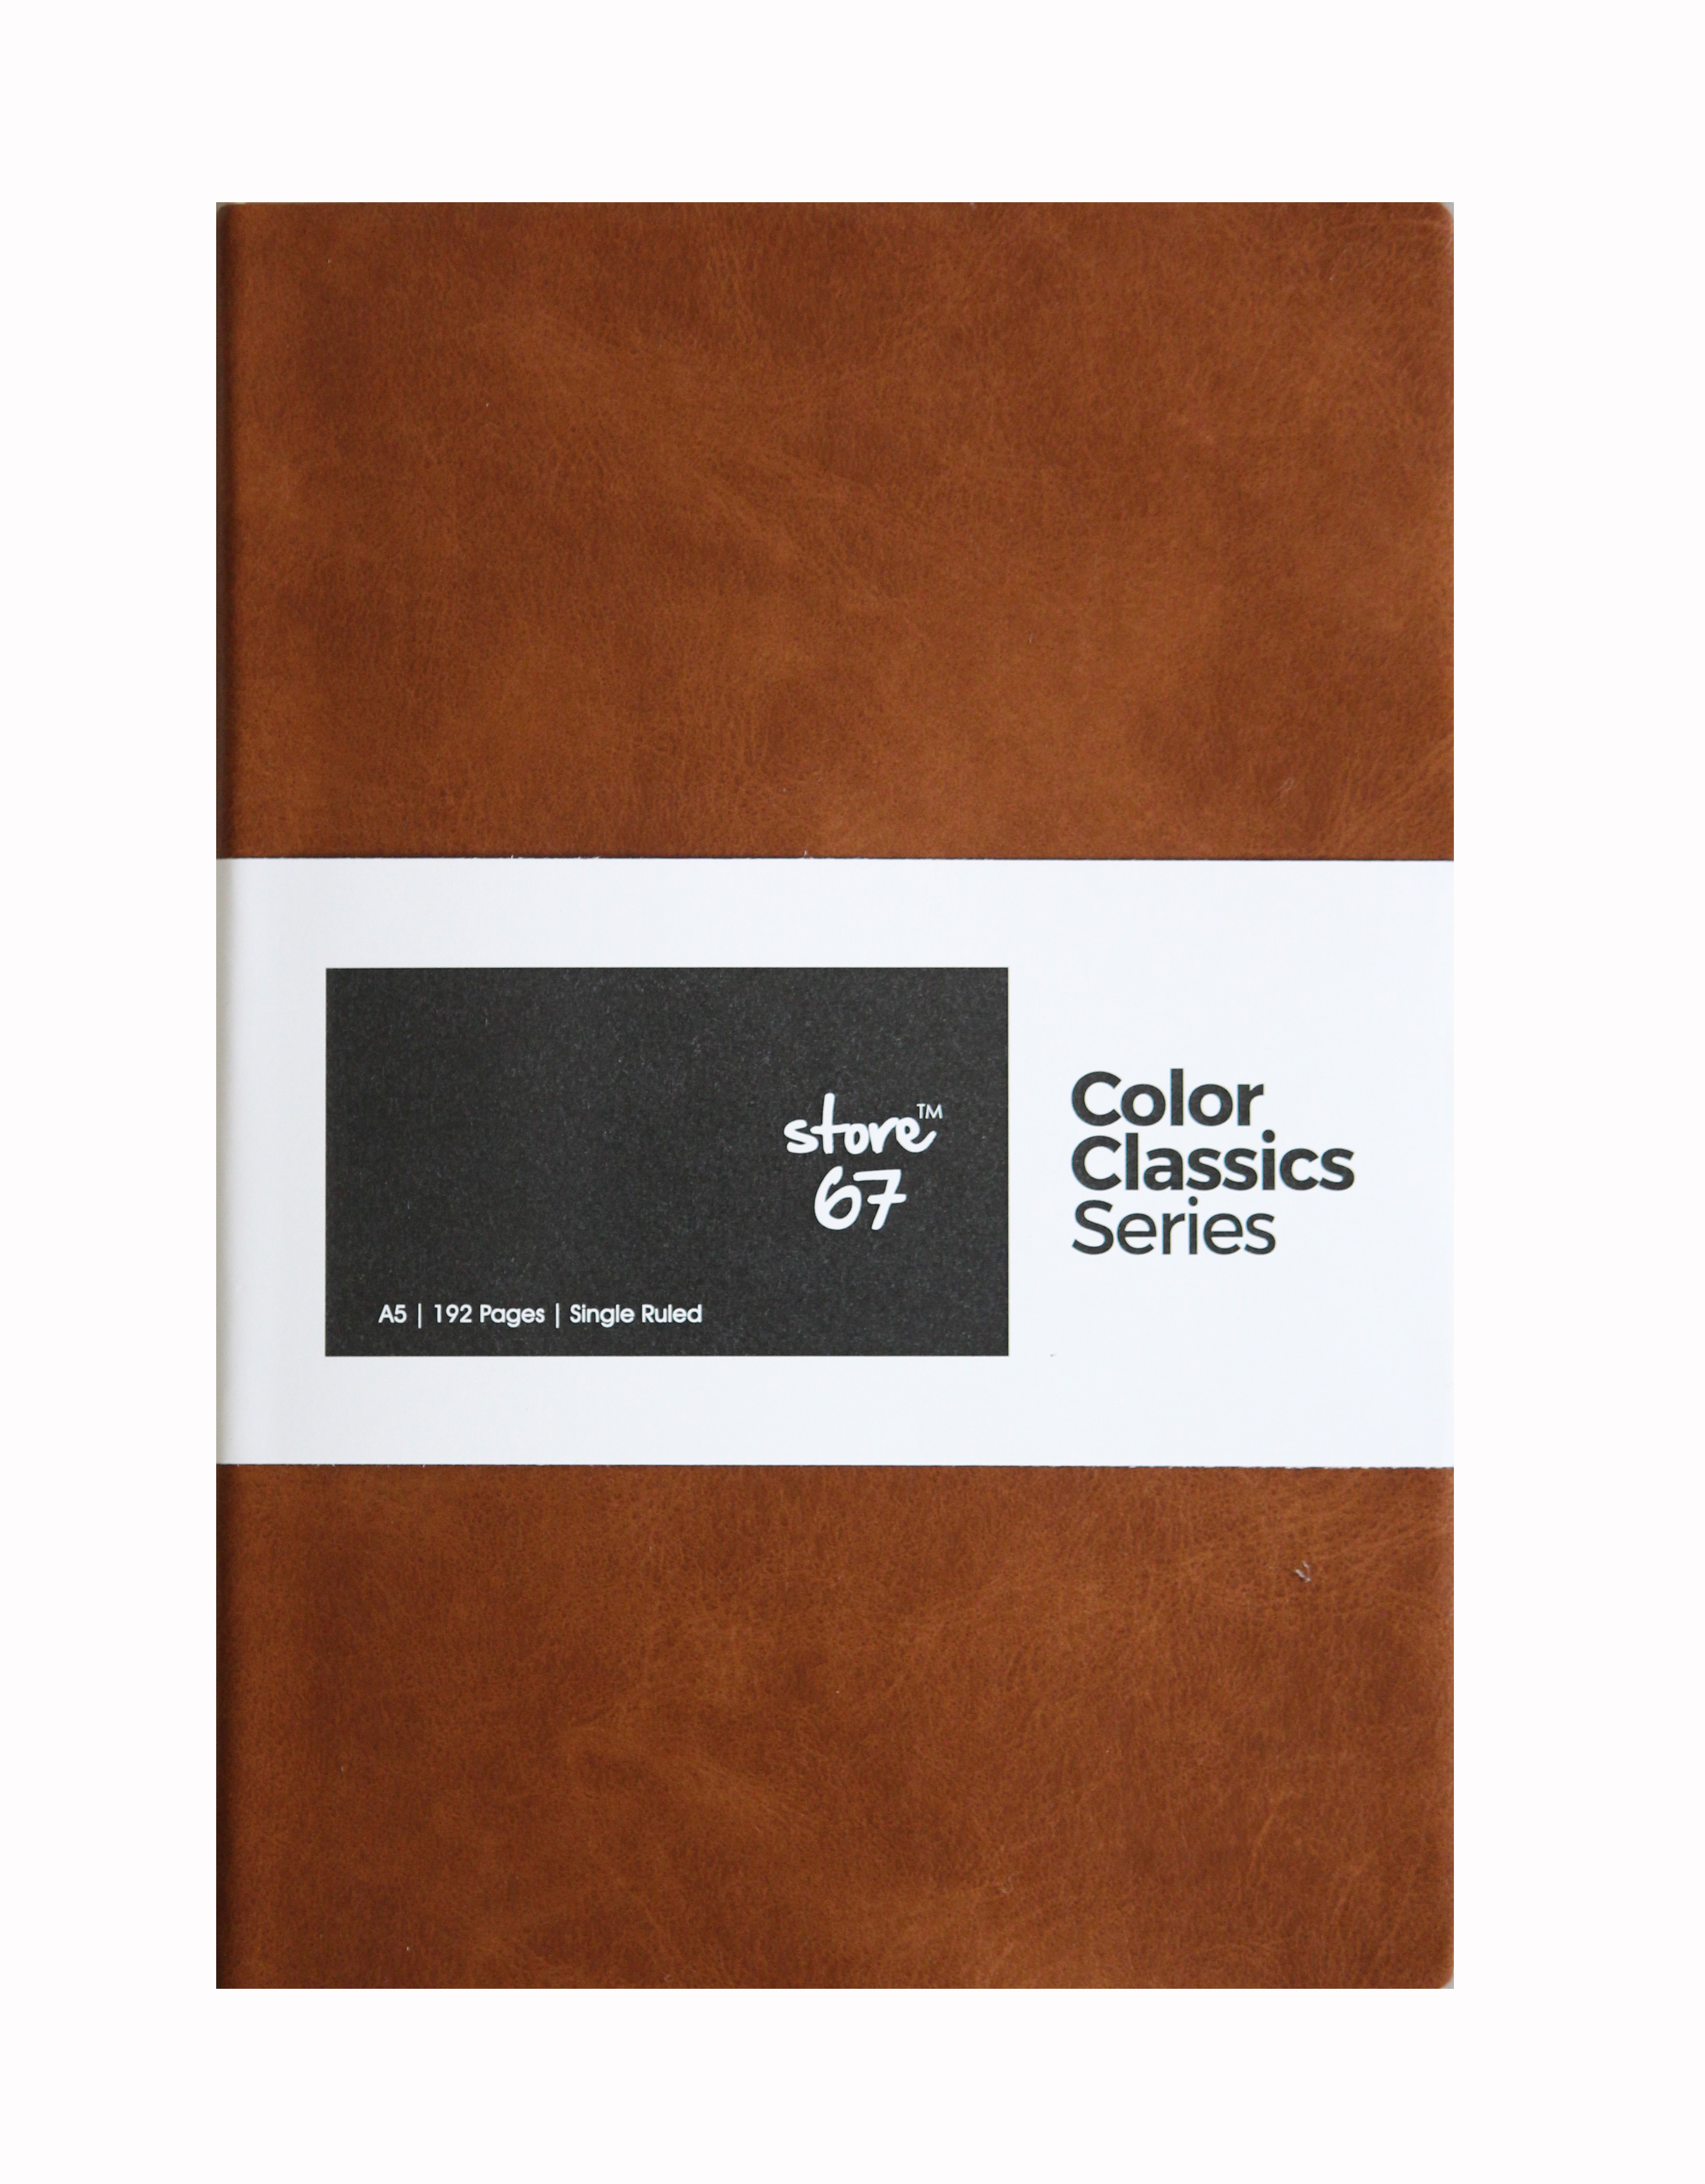 SR A5 - Color Classics 192 pgs - Tan Brown and brown